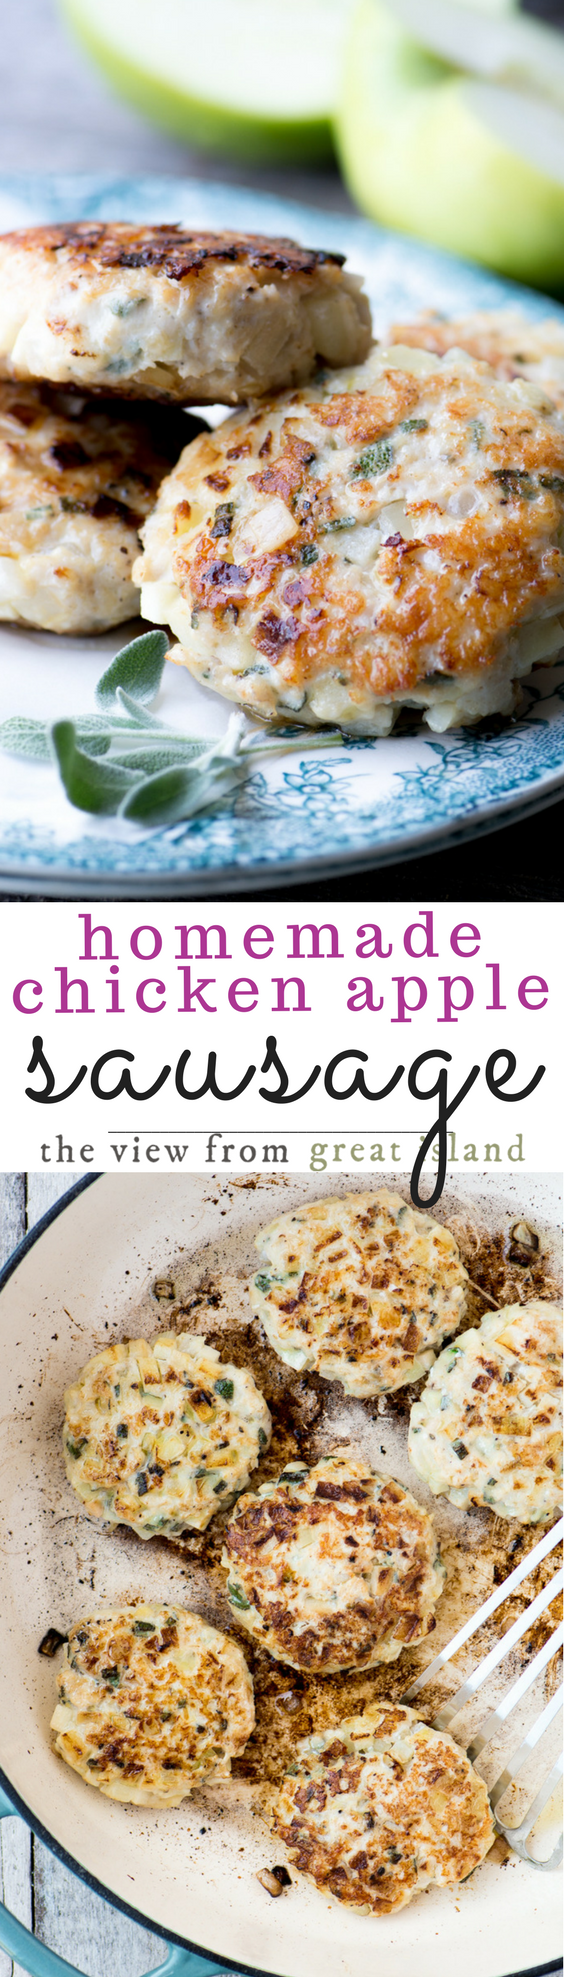 Homemade Chicken Apple Sausage pin